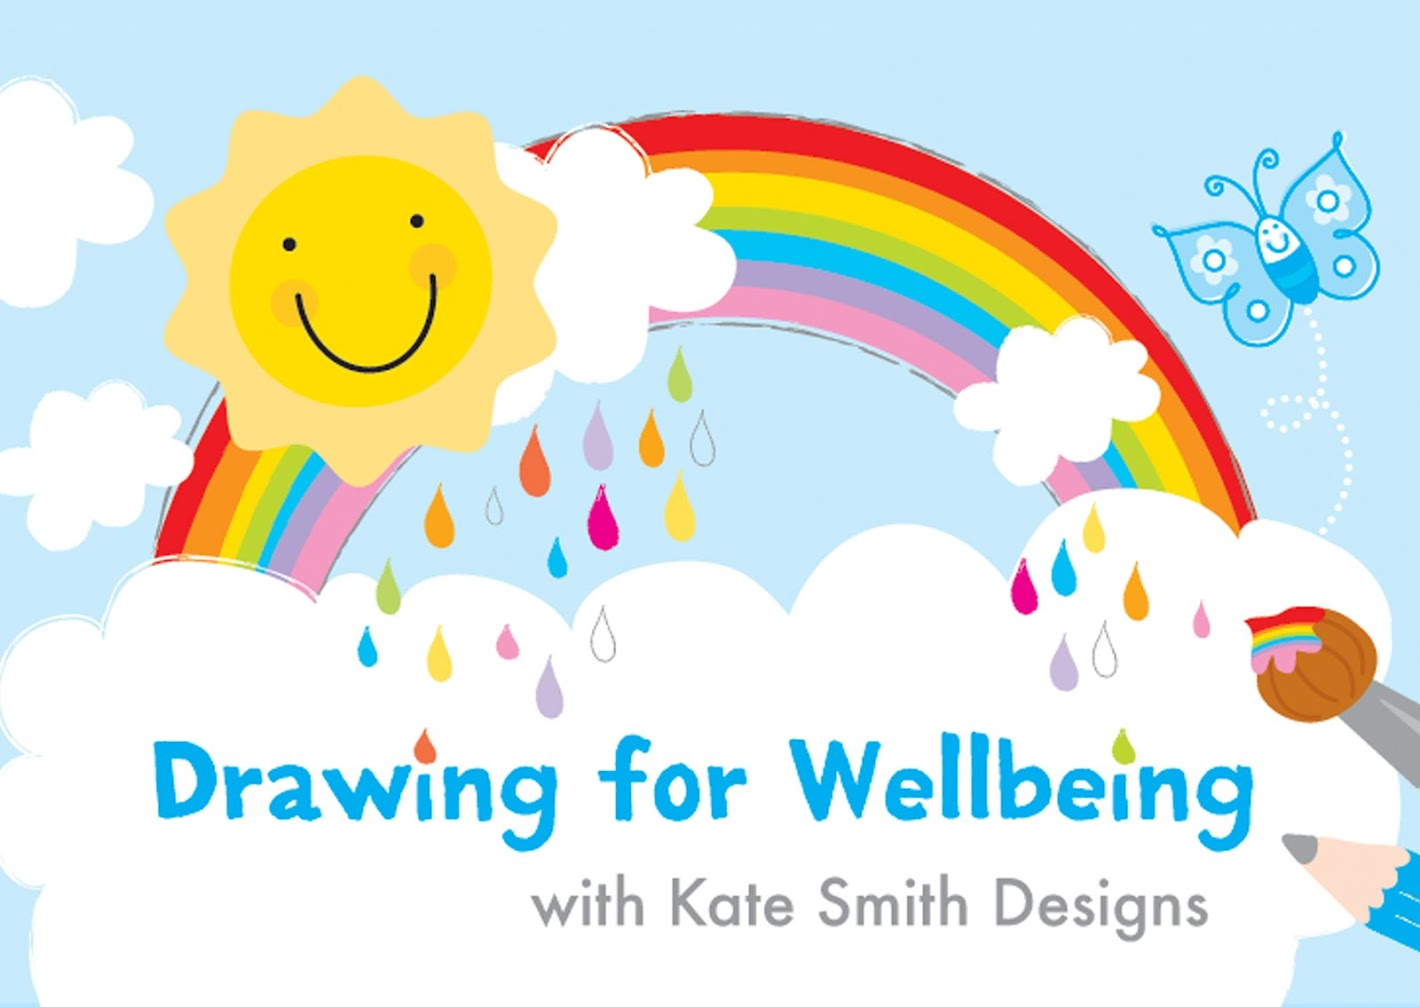 Drawing for Wellbeing